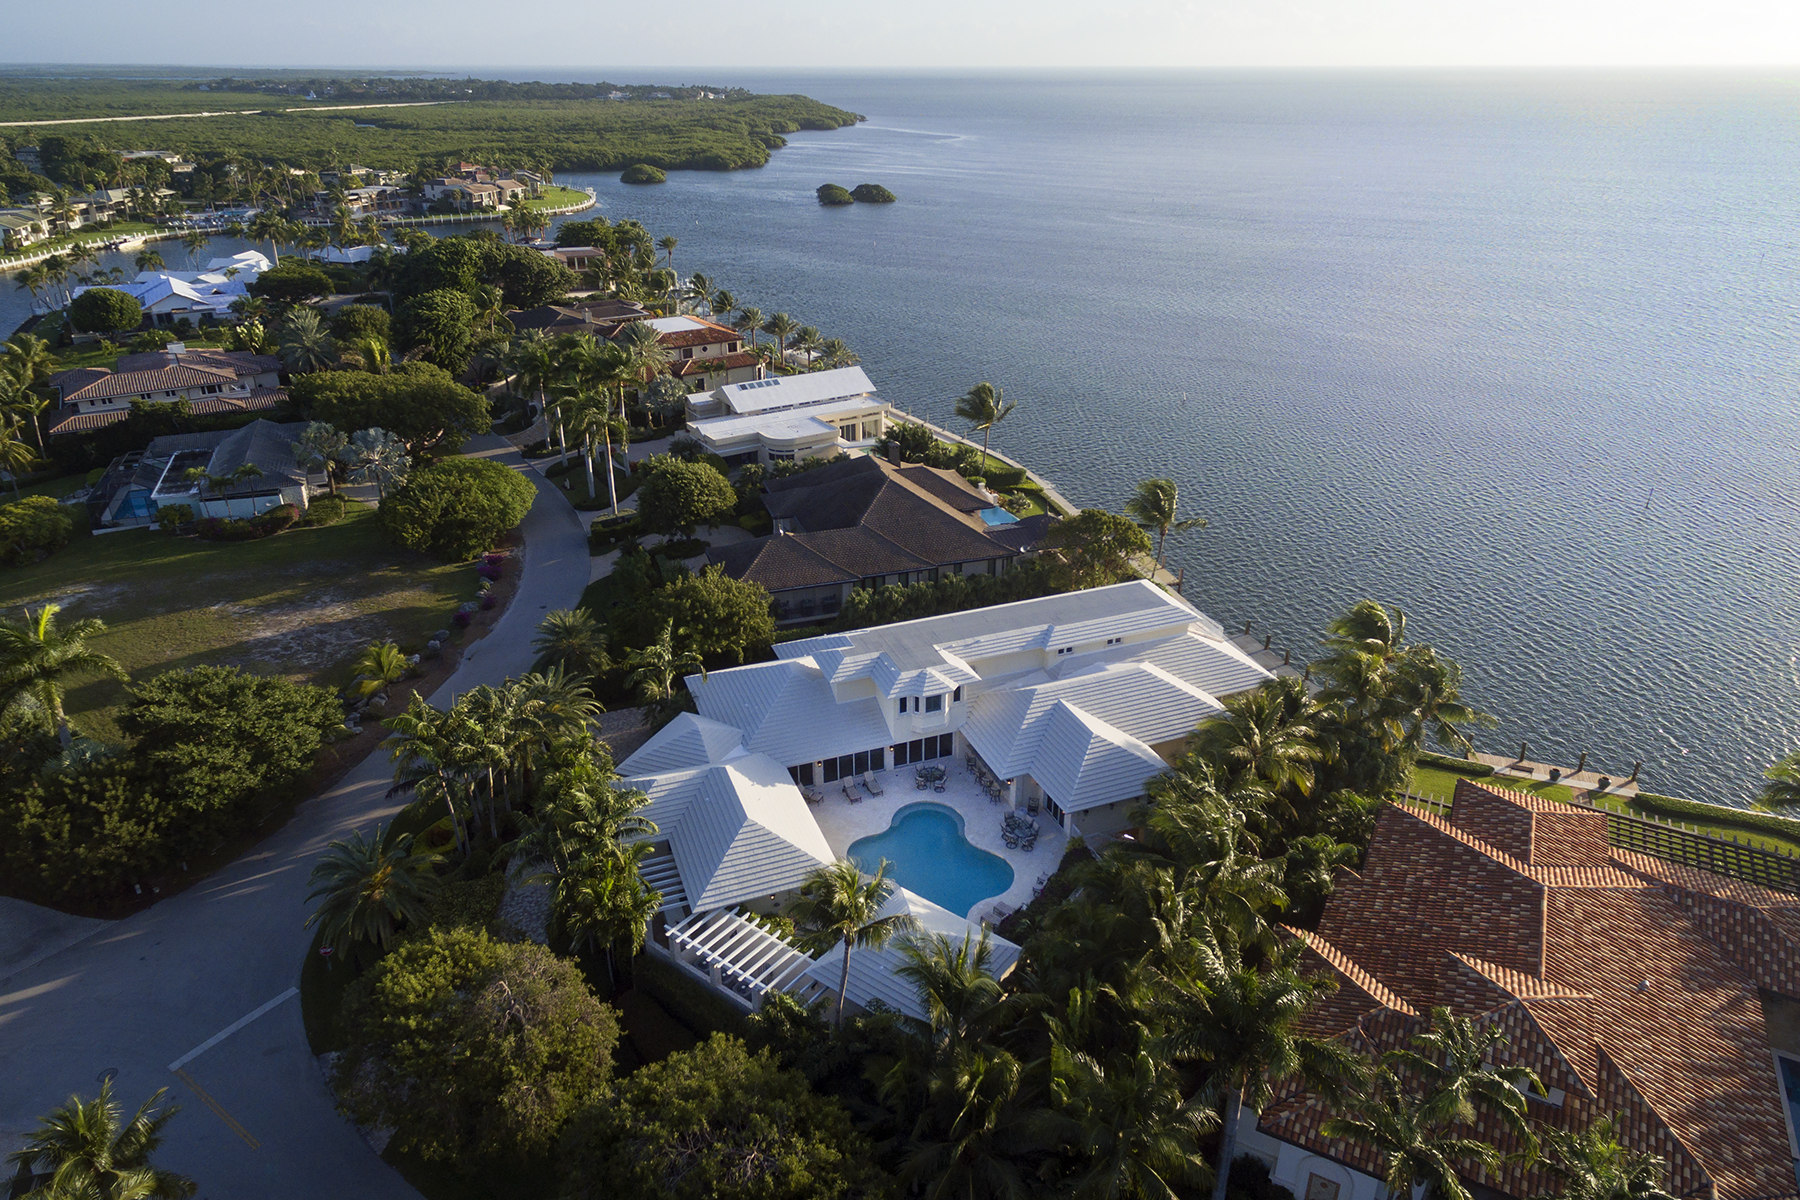 Casa Unifamiliar por un Venta en Extraordinary Oceanfront Home at Ocean Reef 24 Angelfish Cay Drive Key Largo, Florida 33037 Estados Unidos